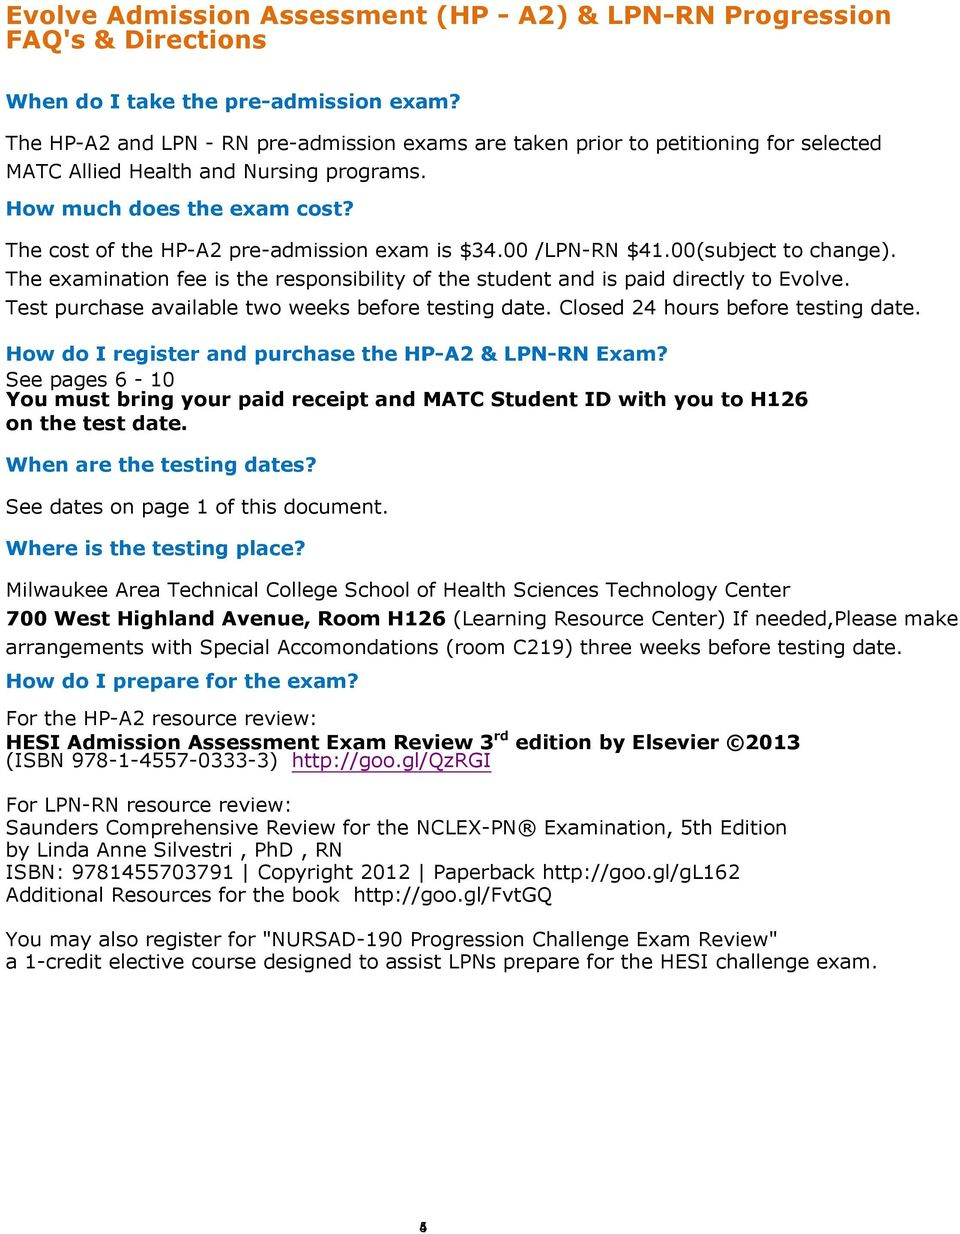 The cost of the HP-A2 pre-admission exam is $34.00 /LPN-